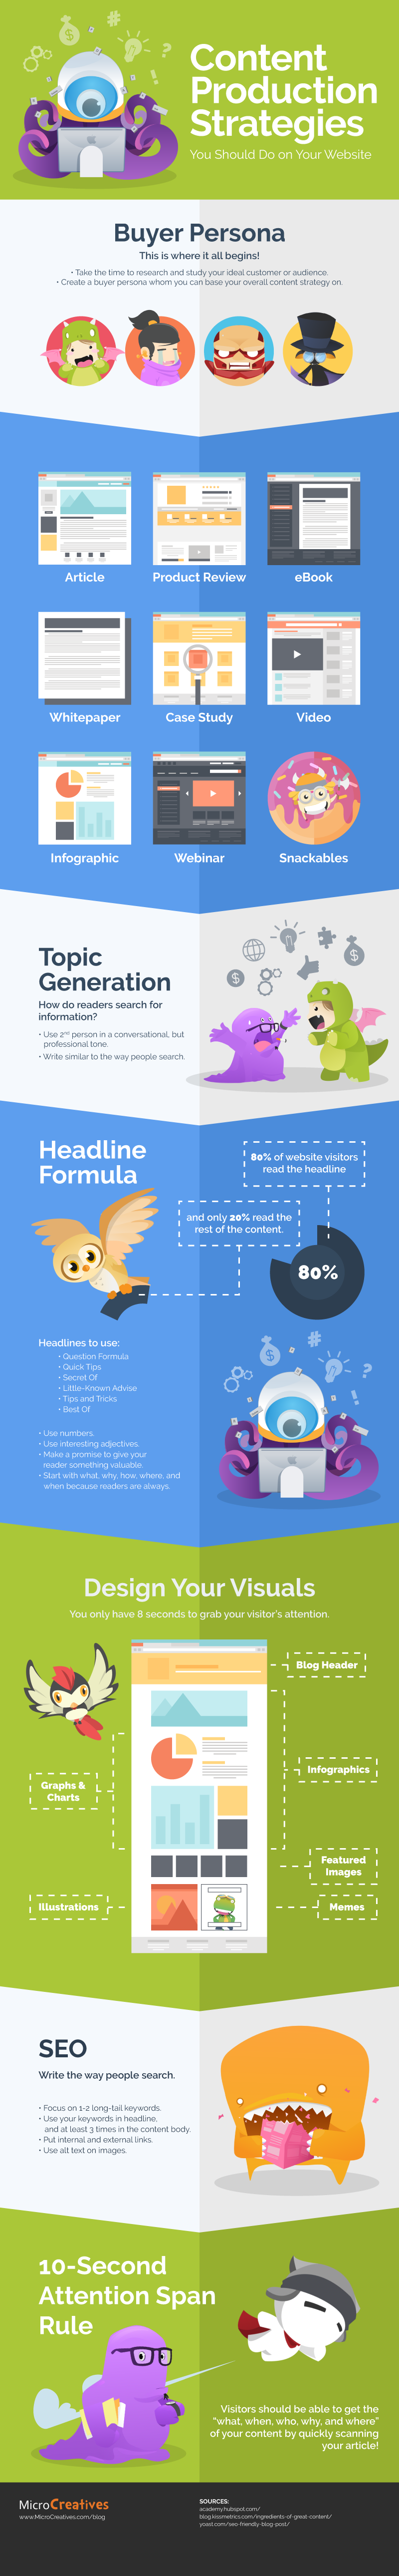 Content Production Strategies You Should Do On Your Website - #infographic